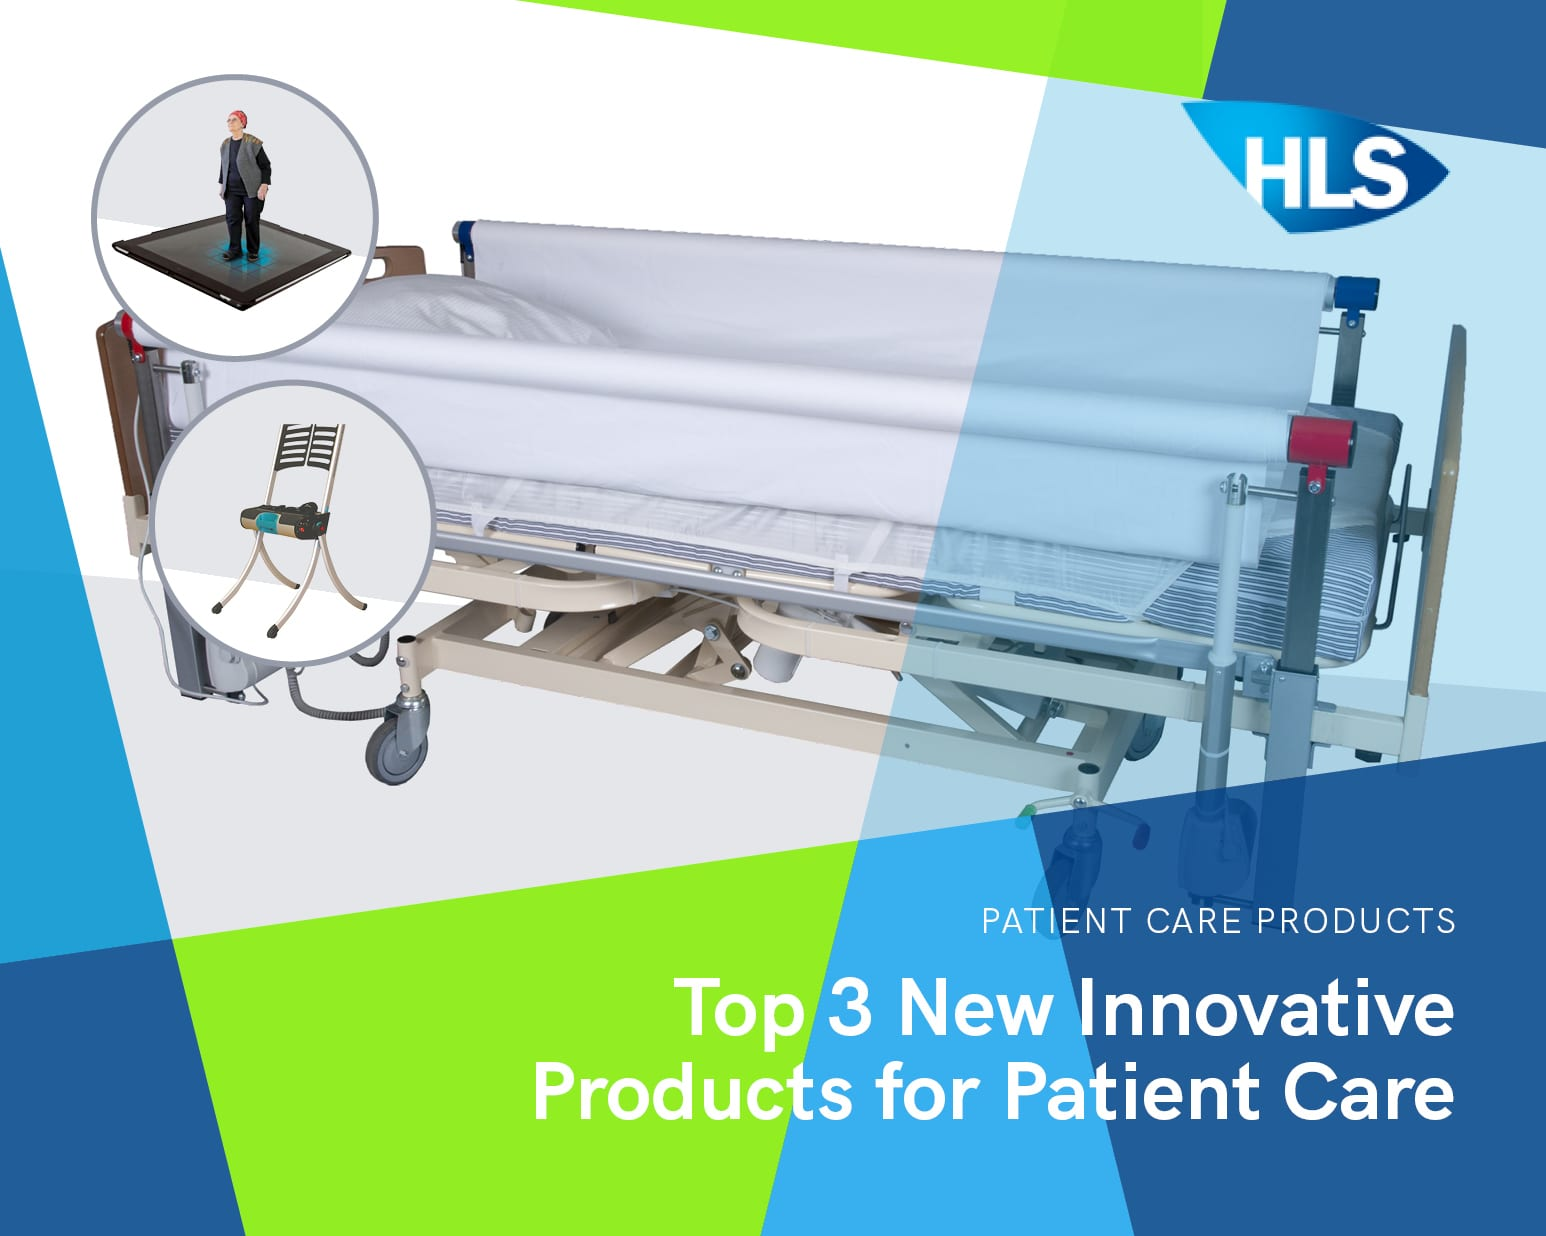 Top 3 New Innovative Products for Patient Care